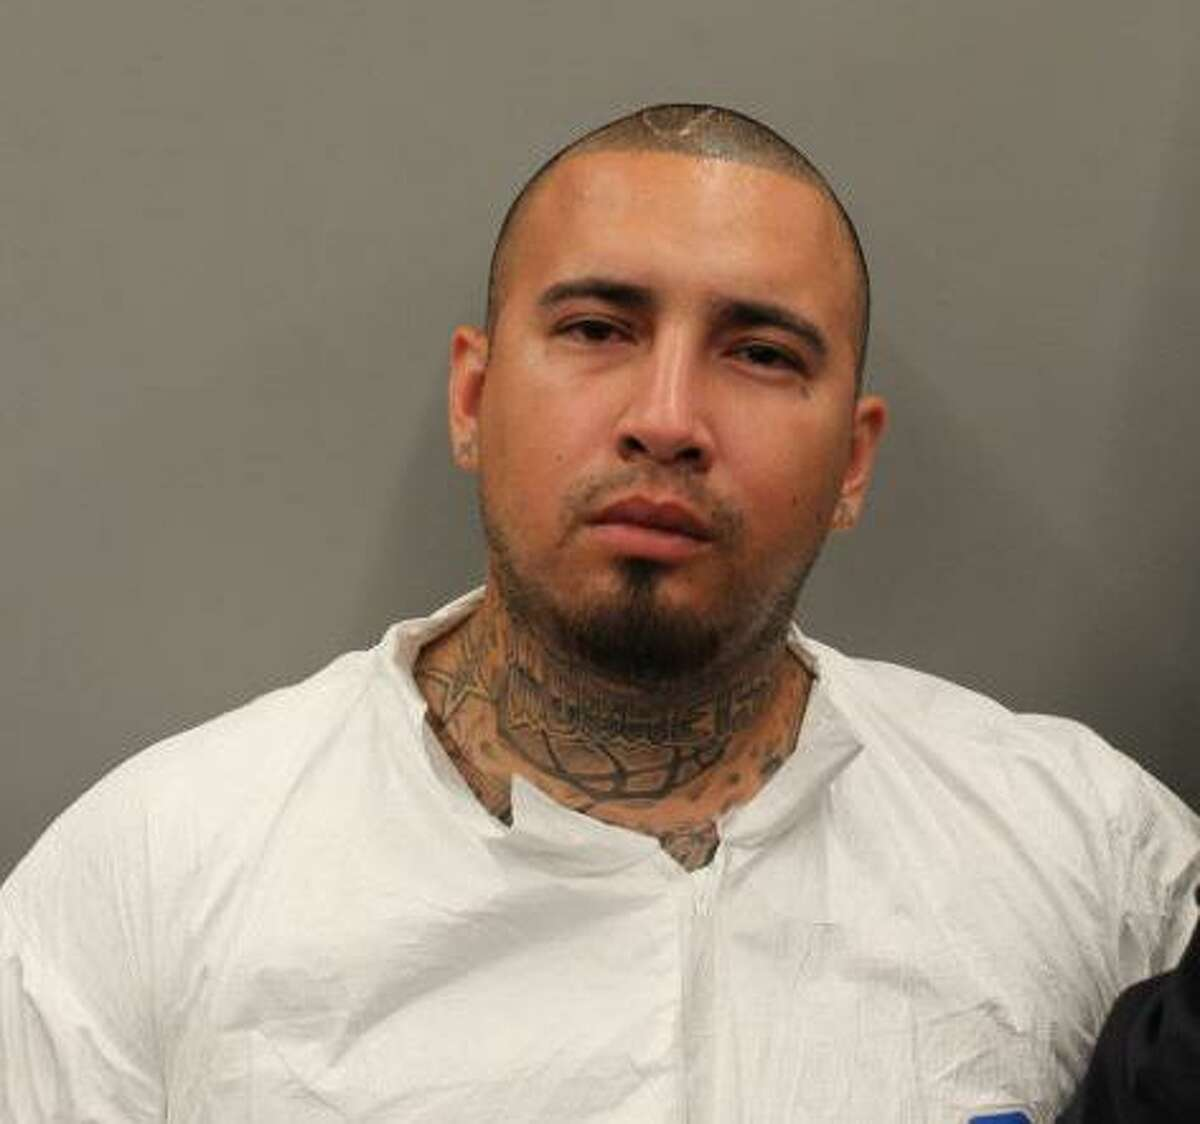 David Cruz, 28, was charged with murder for allegedly shooting Christian Tristan, 27, to death at 7400 Satsuma on Aug. 5, 2019.